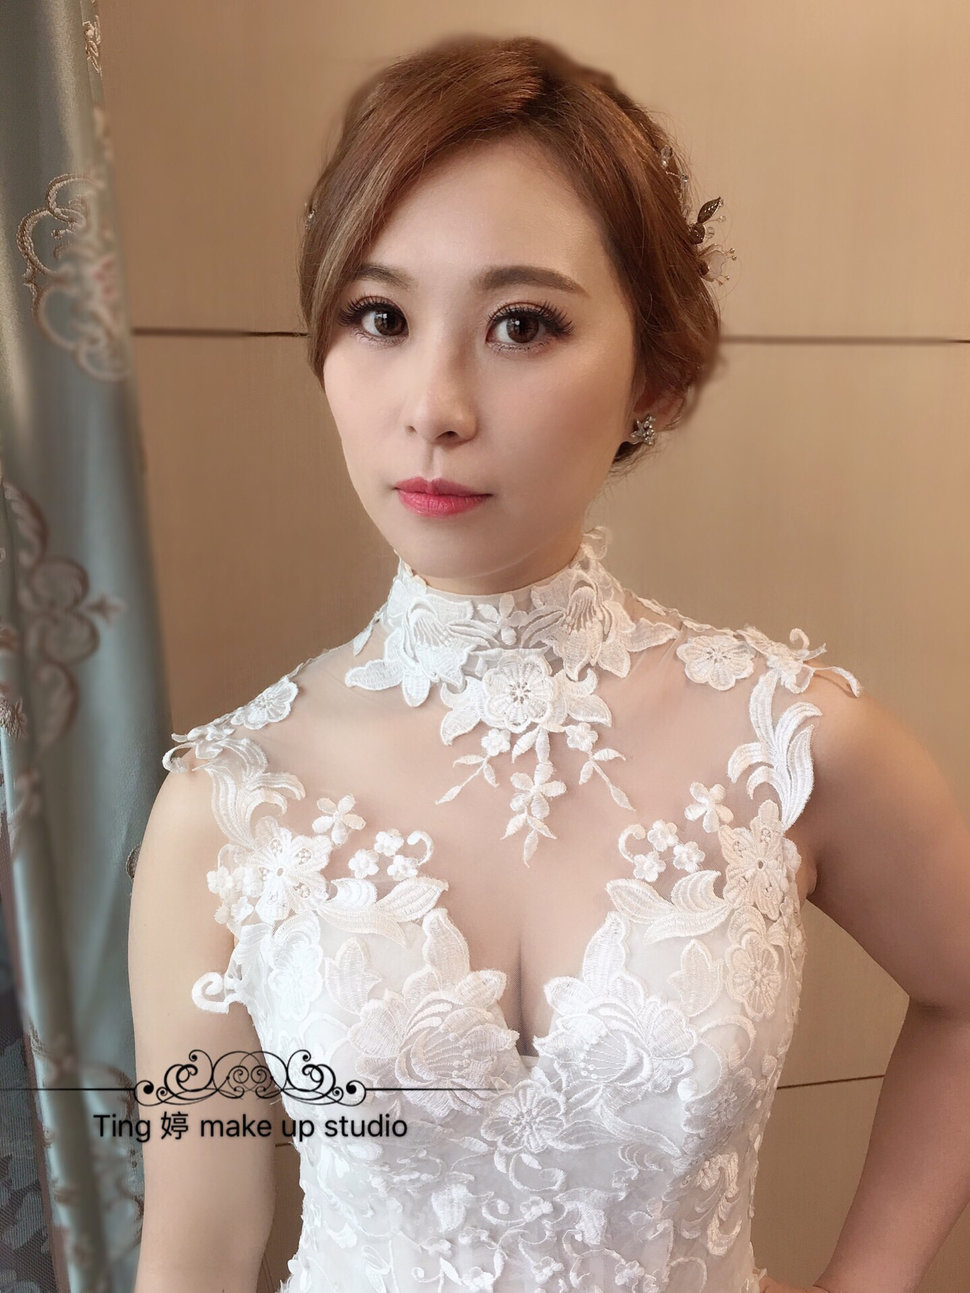 4E8B0192-756F-40C4-ACDB-660F45B98AD0 - Ting婷 make up studio《結婚吧》